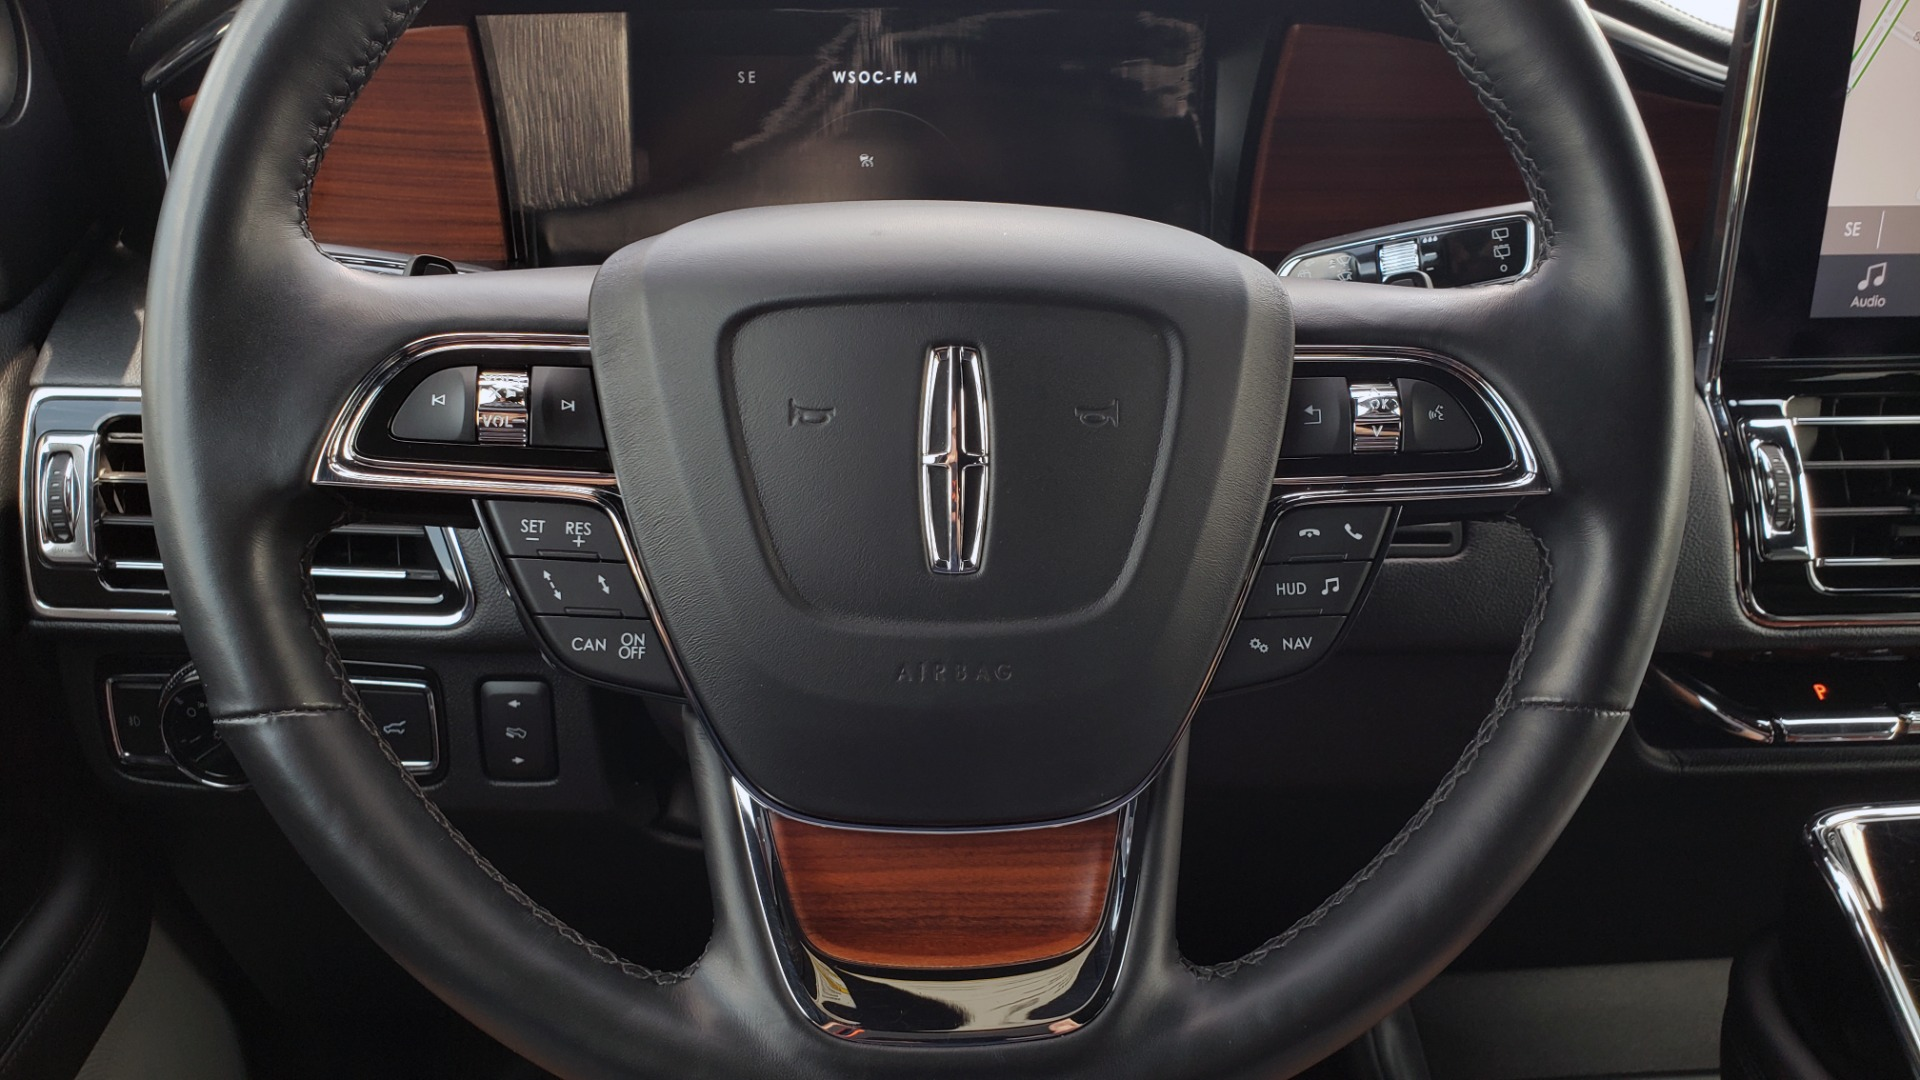 Used 2019 Lincoln NAVIGATOR RESERVE 4X4 / NAV / PANO-ROOF / REVEL ULTIMA AUDIO / 3-ROW / REARVIEW for sale $74,795 at Formula Imports in Charlotte NC 28227 46